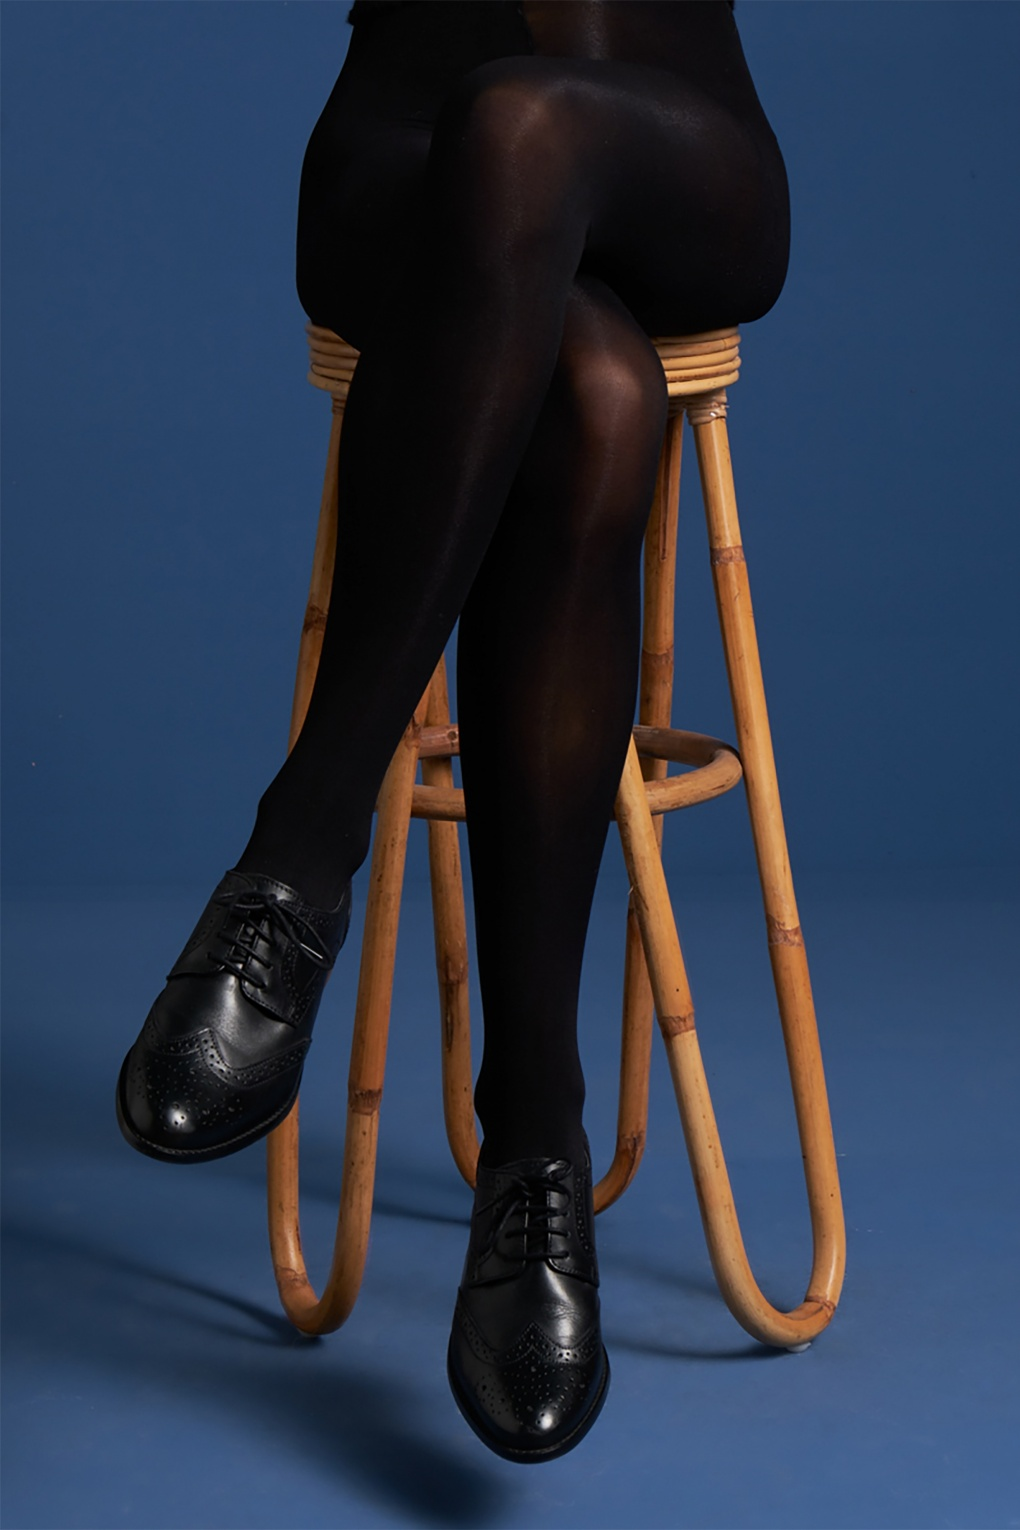 1960s Tights, Stockings, Panty Hose, Knee High Socks 60s Micro Tights in Black £11.16 AT vintagedancer.com